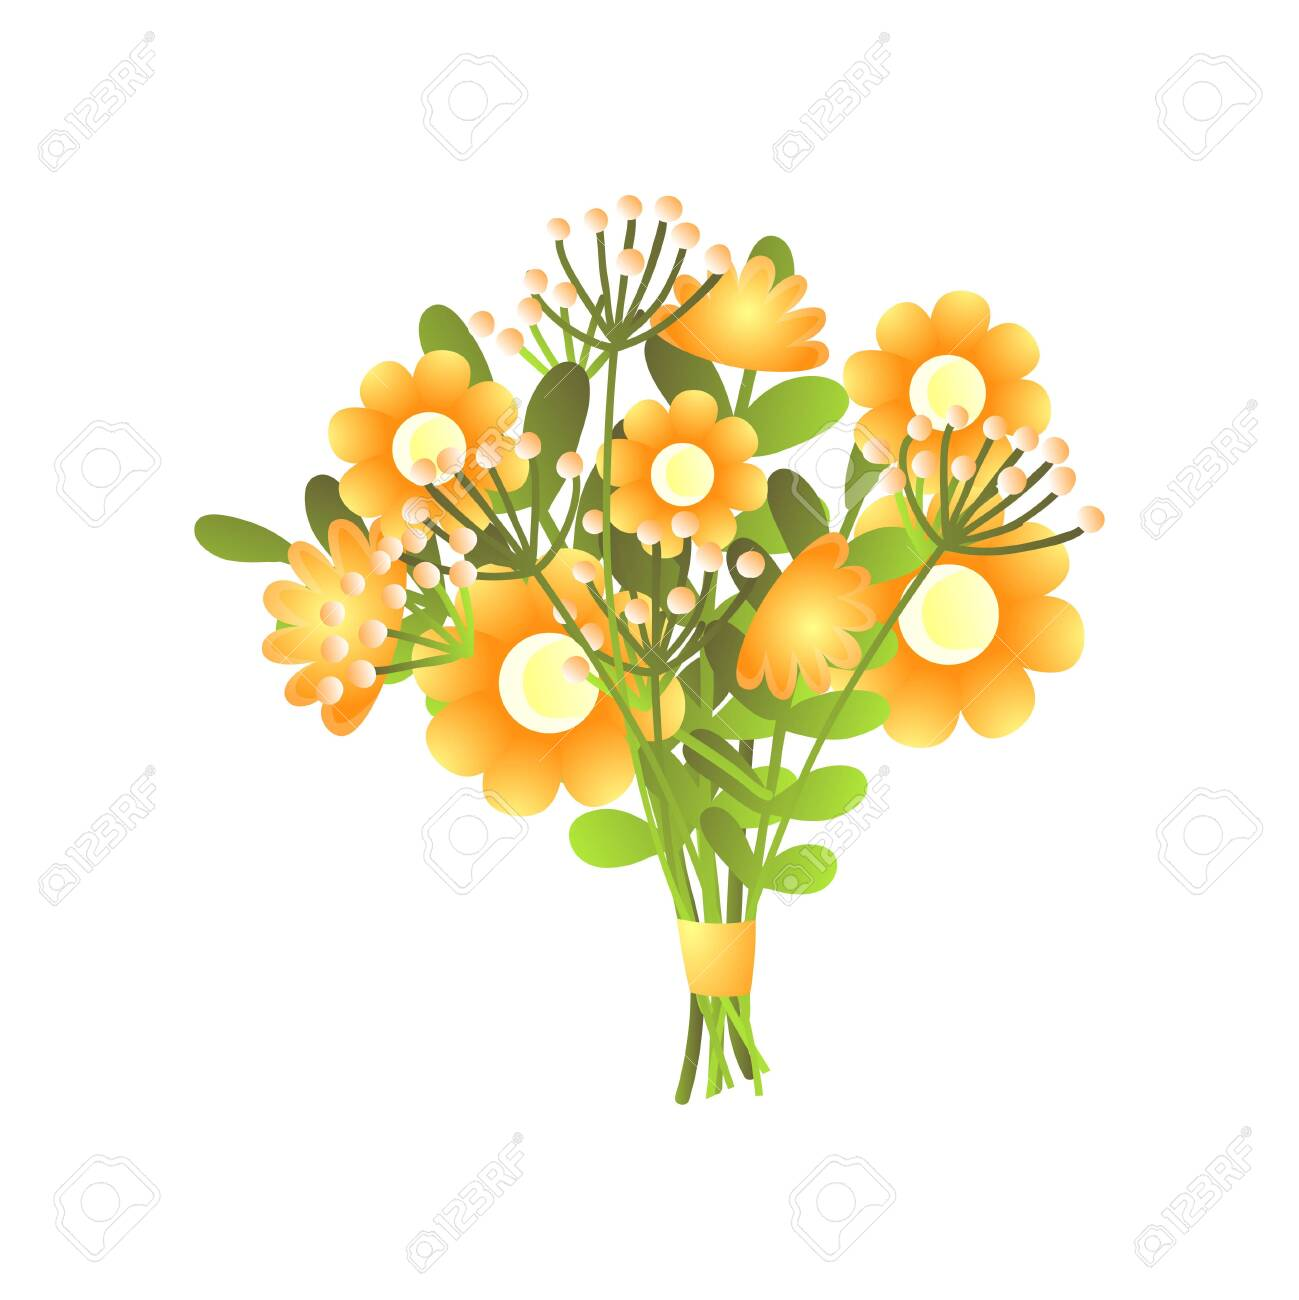 Colorful fresh yellow bloomy flowers bouquet with ribbon isolated